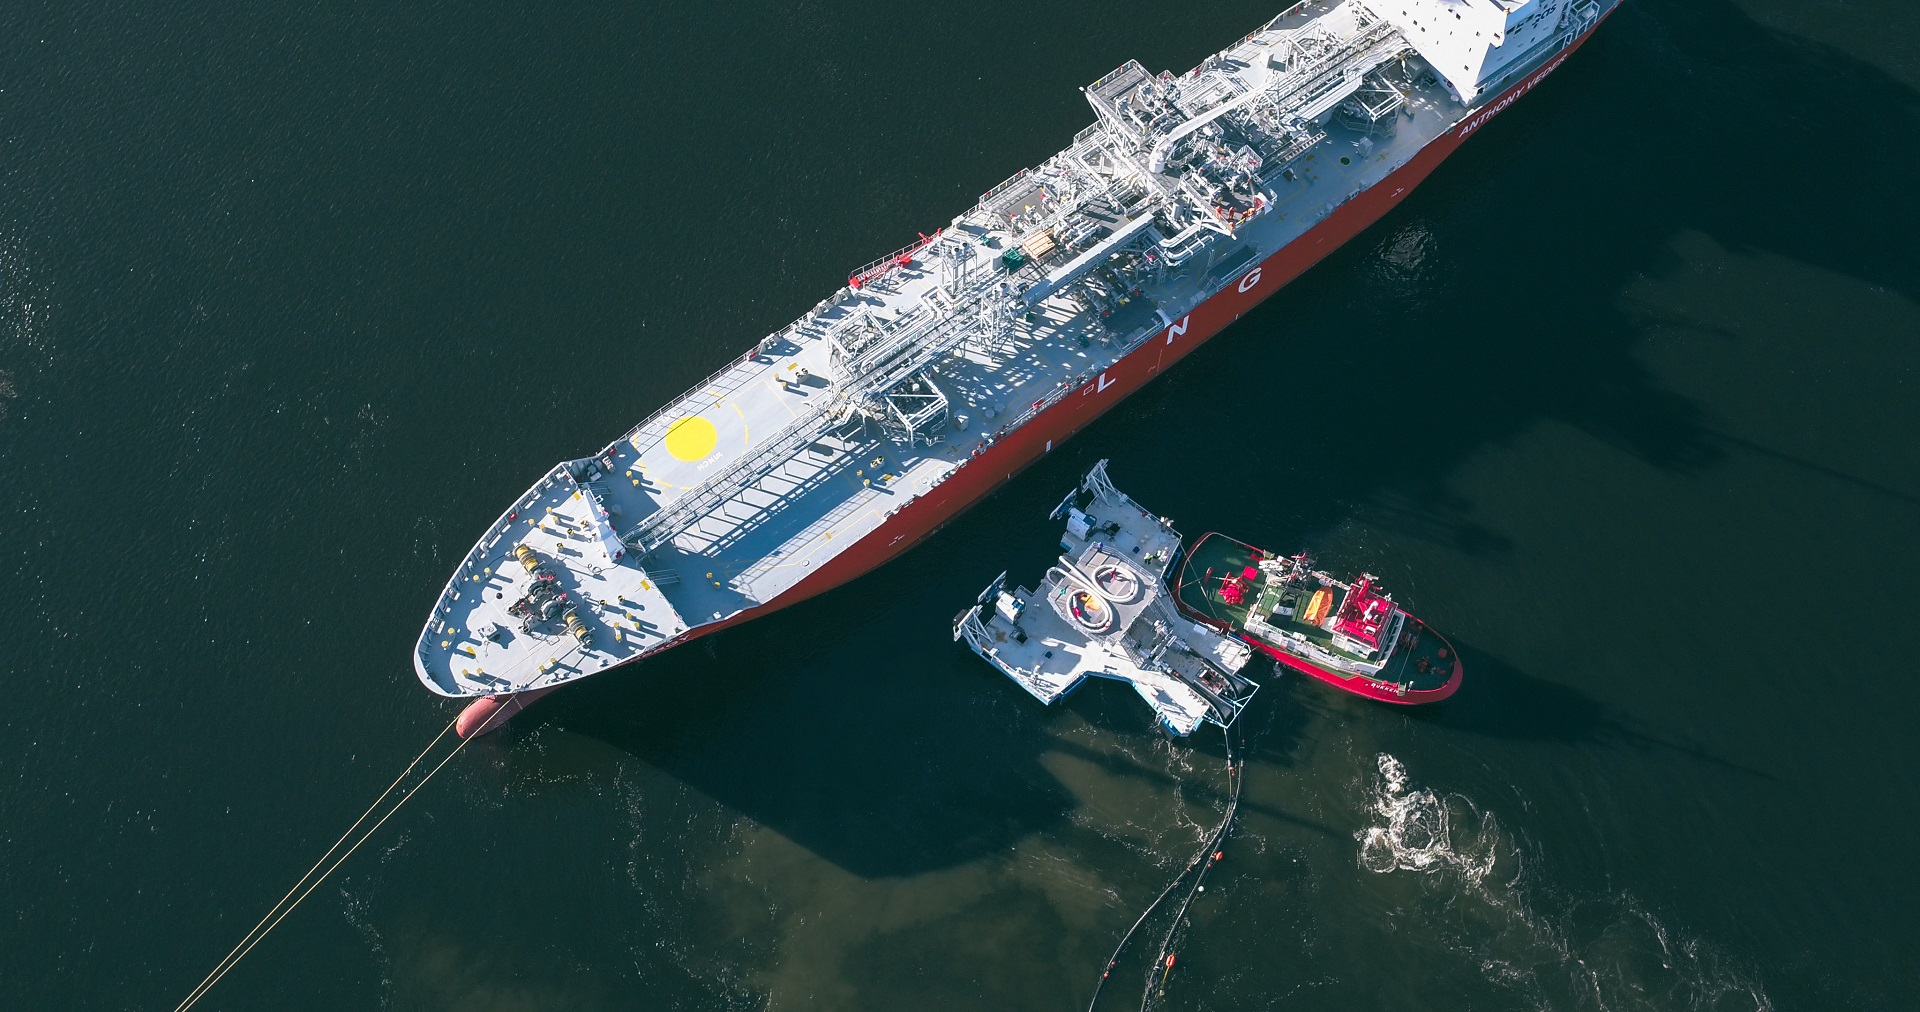 Floating jettyless transfer system connecting to an LNG carrier